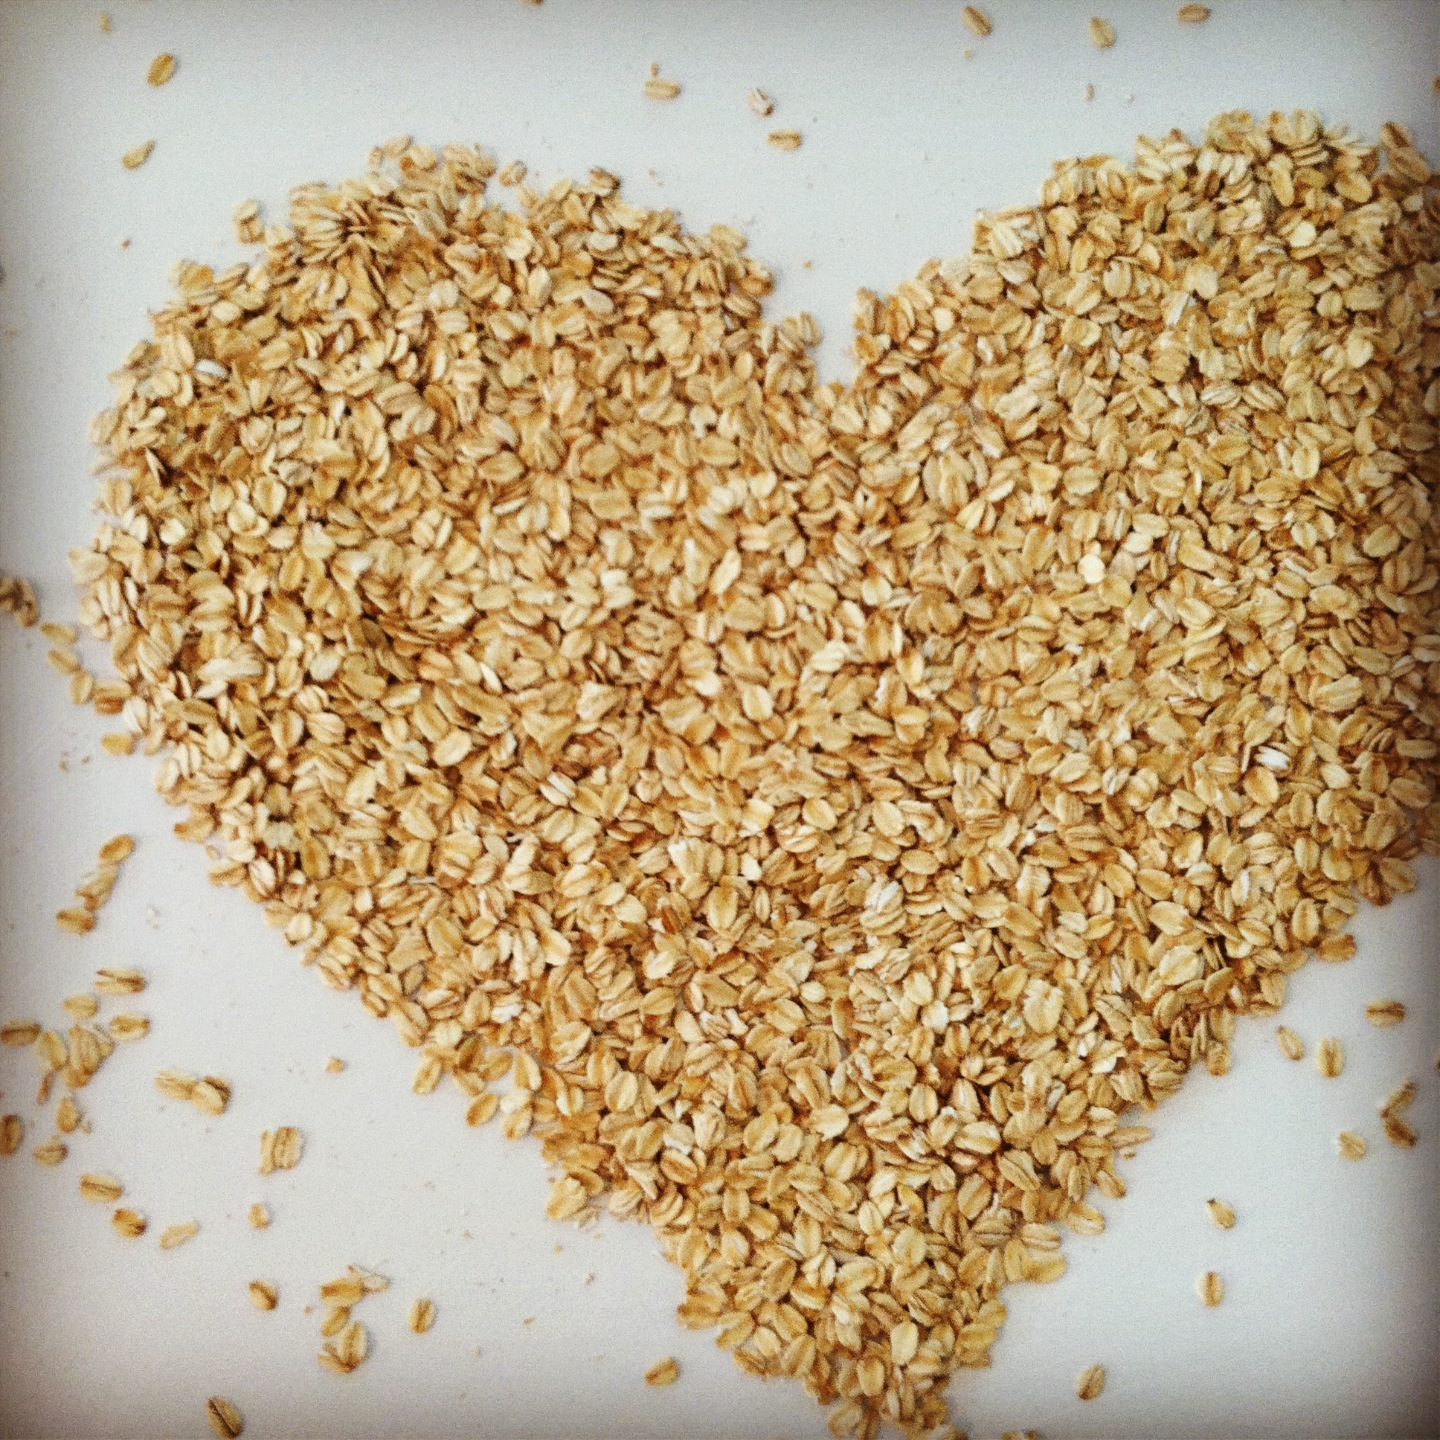 Chipped Oats in a Shape of Heart 722.18 Kb